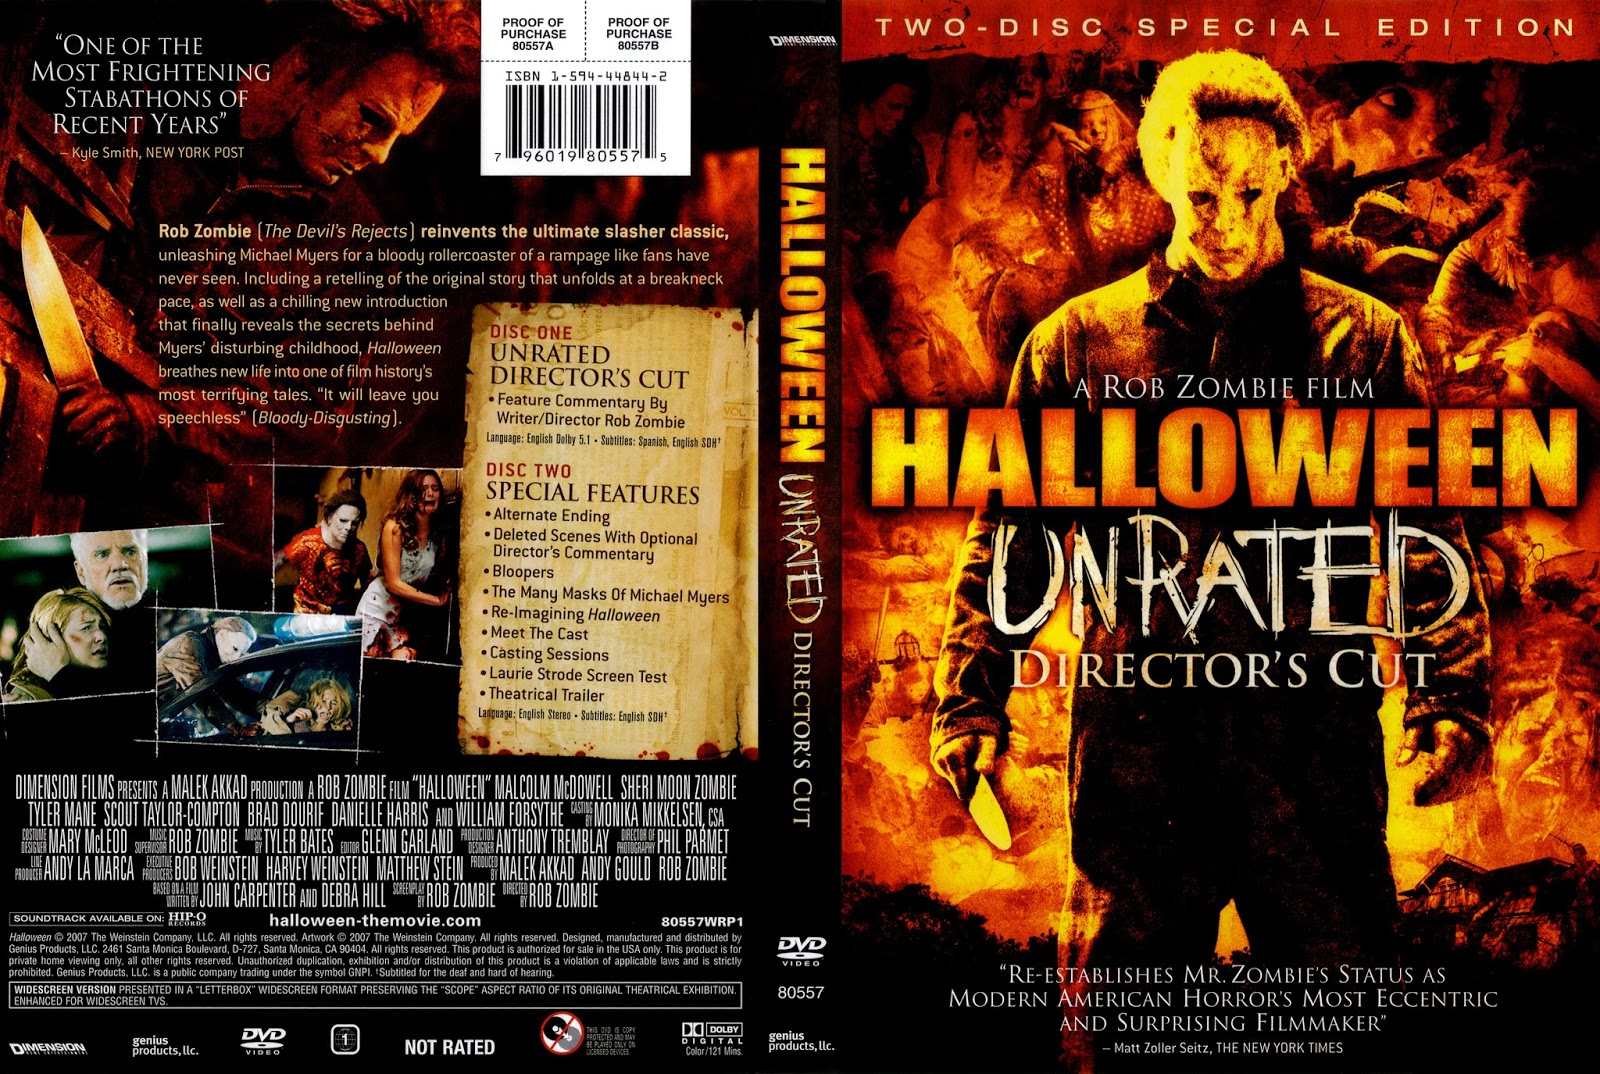 The Horrors of Halloween: HALLOWEEN (2007) VHS, DVD and Blu-ray Covers